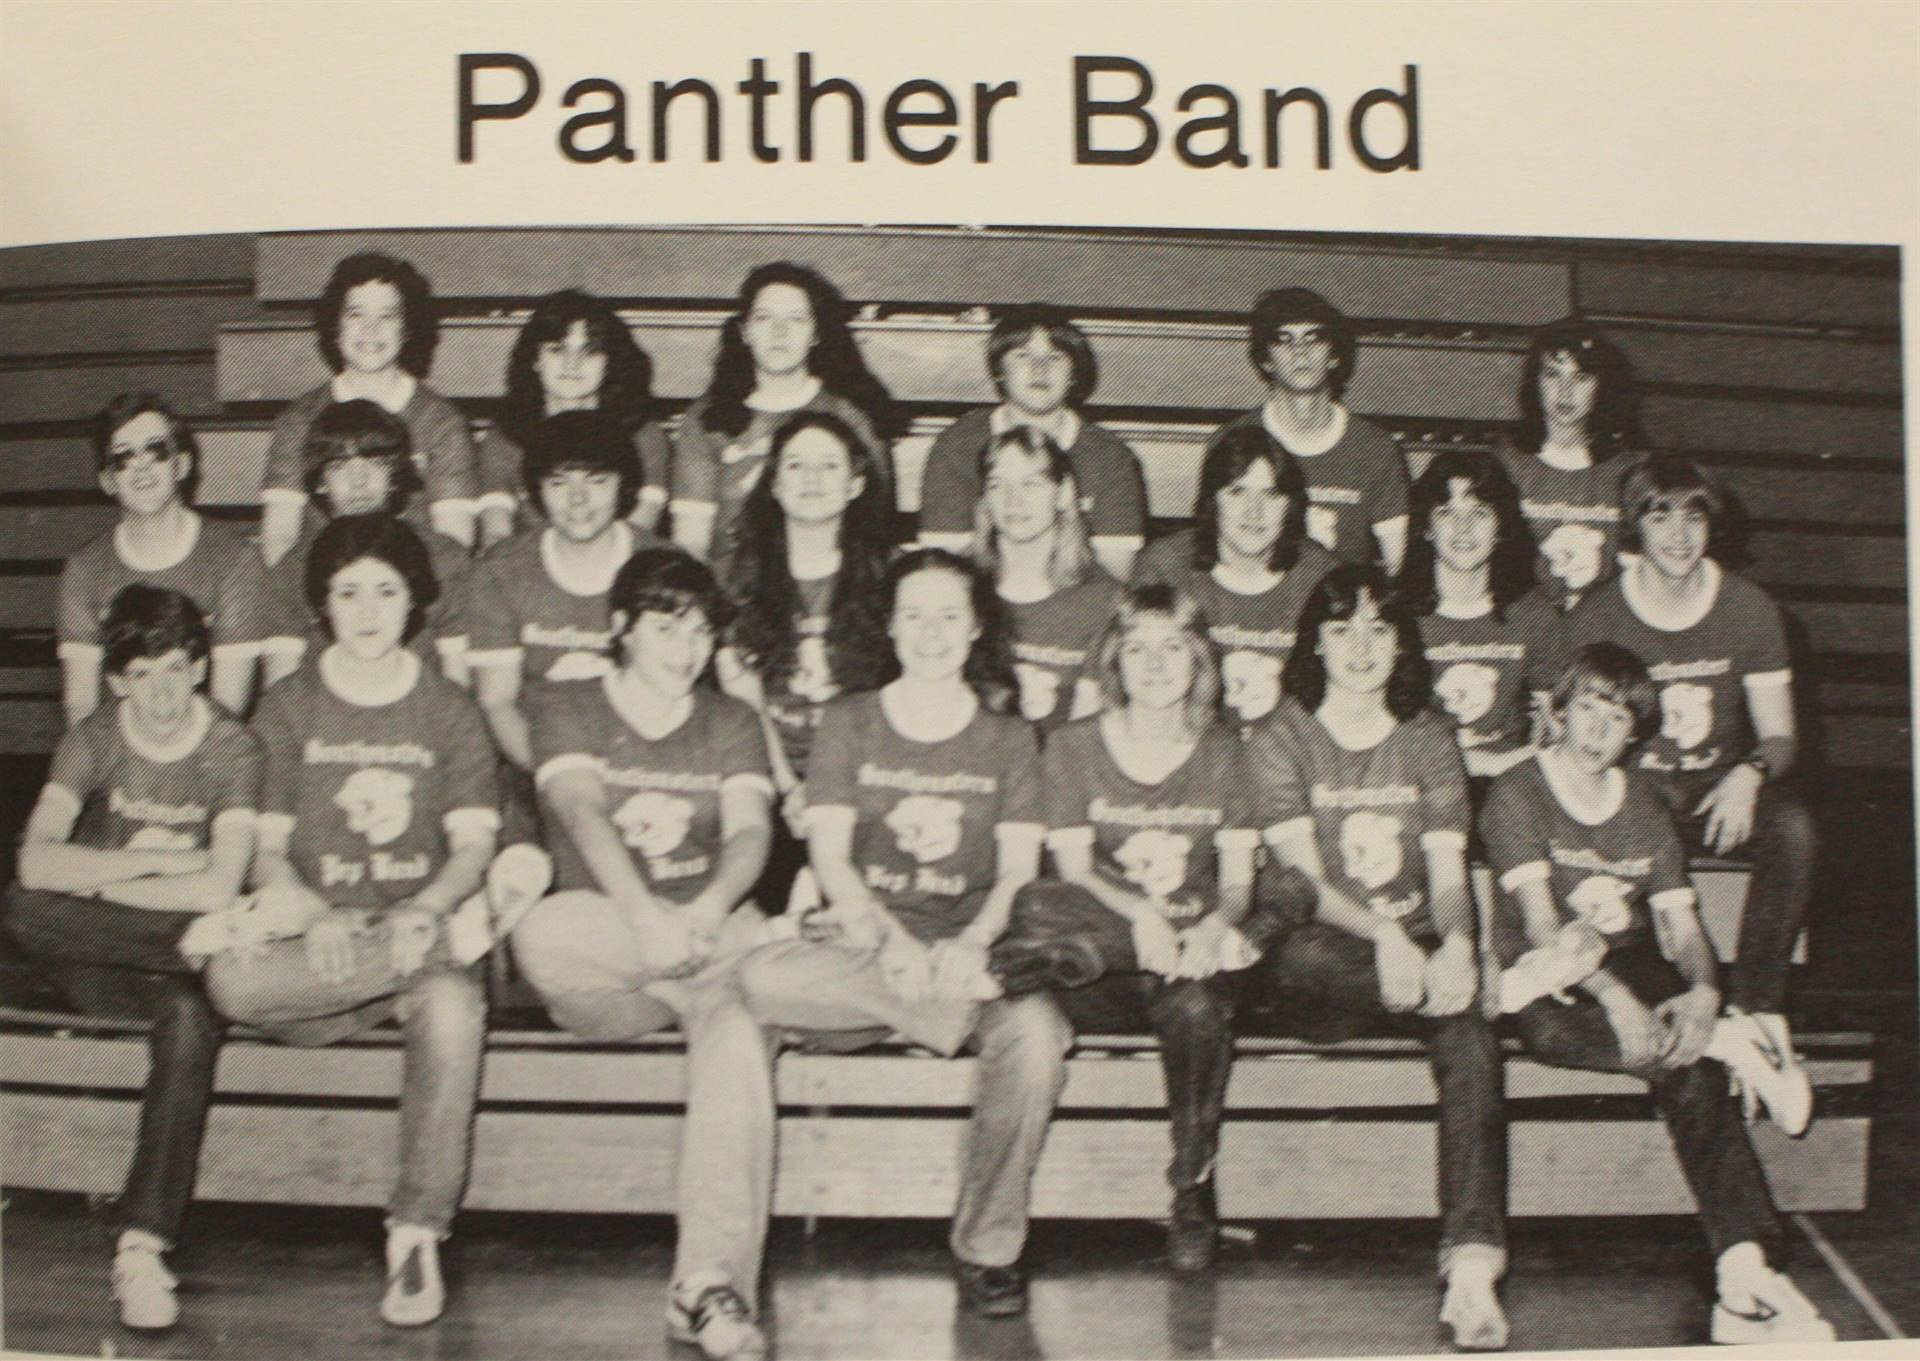 1982 Panther Band